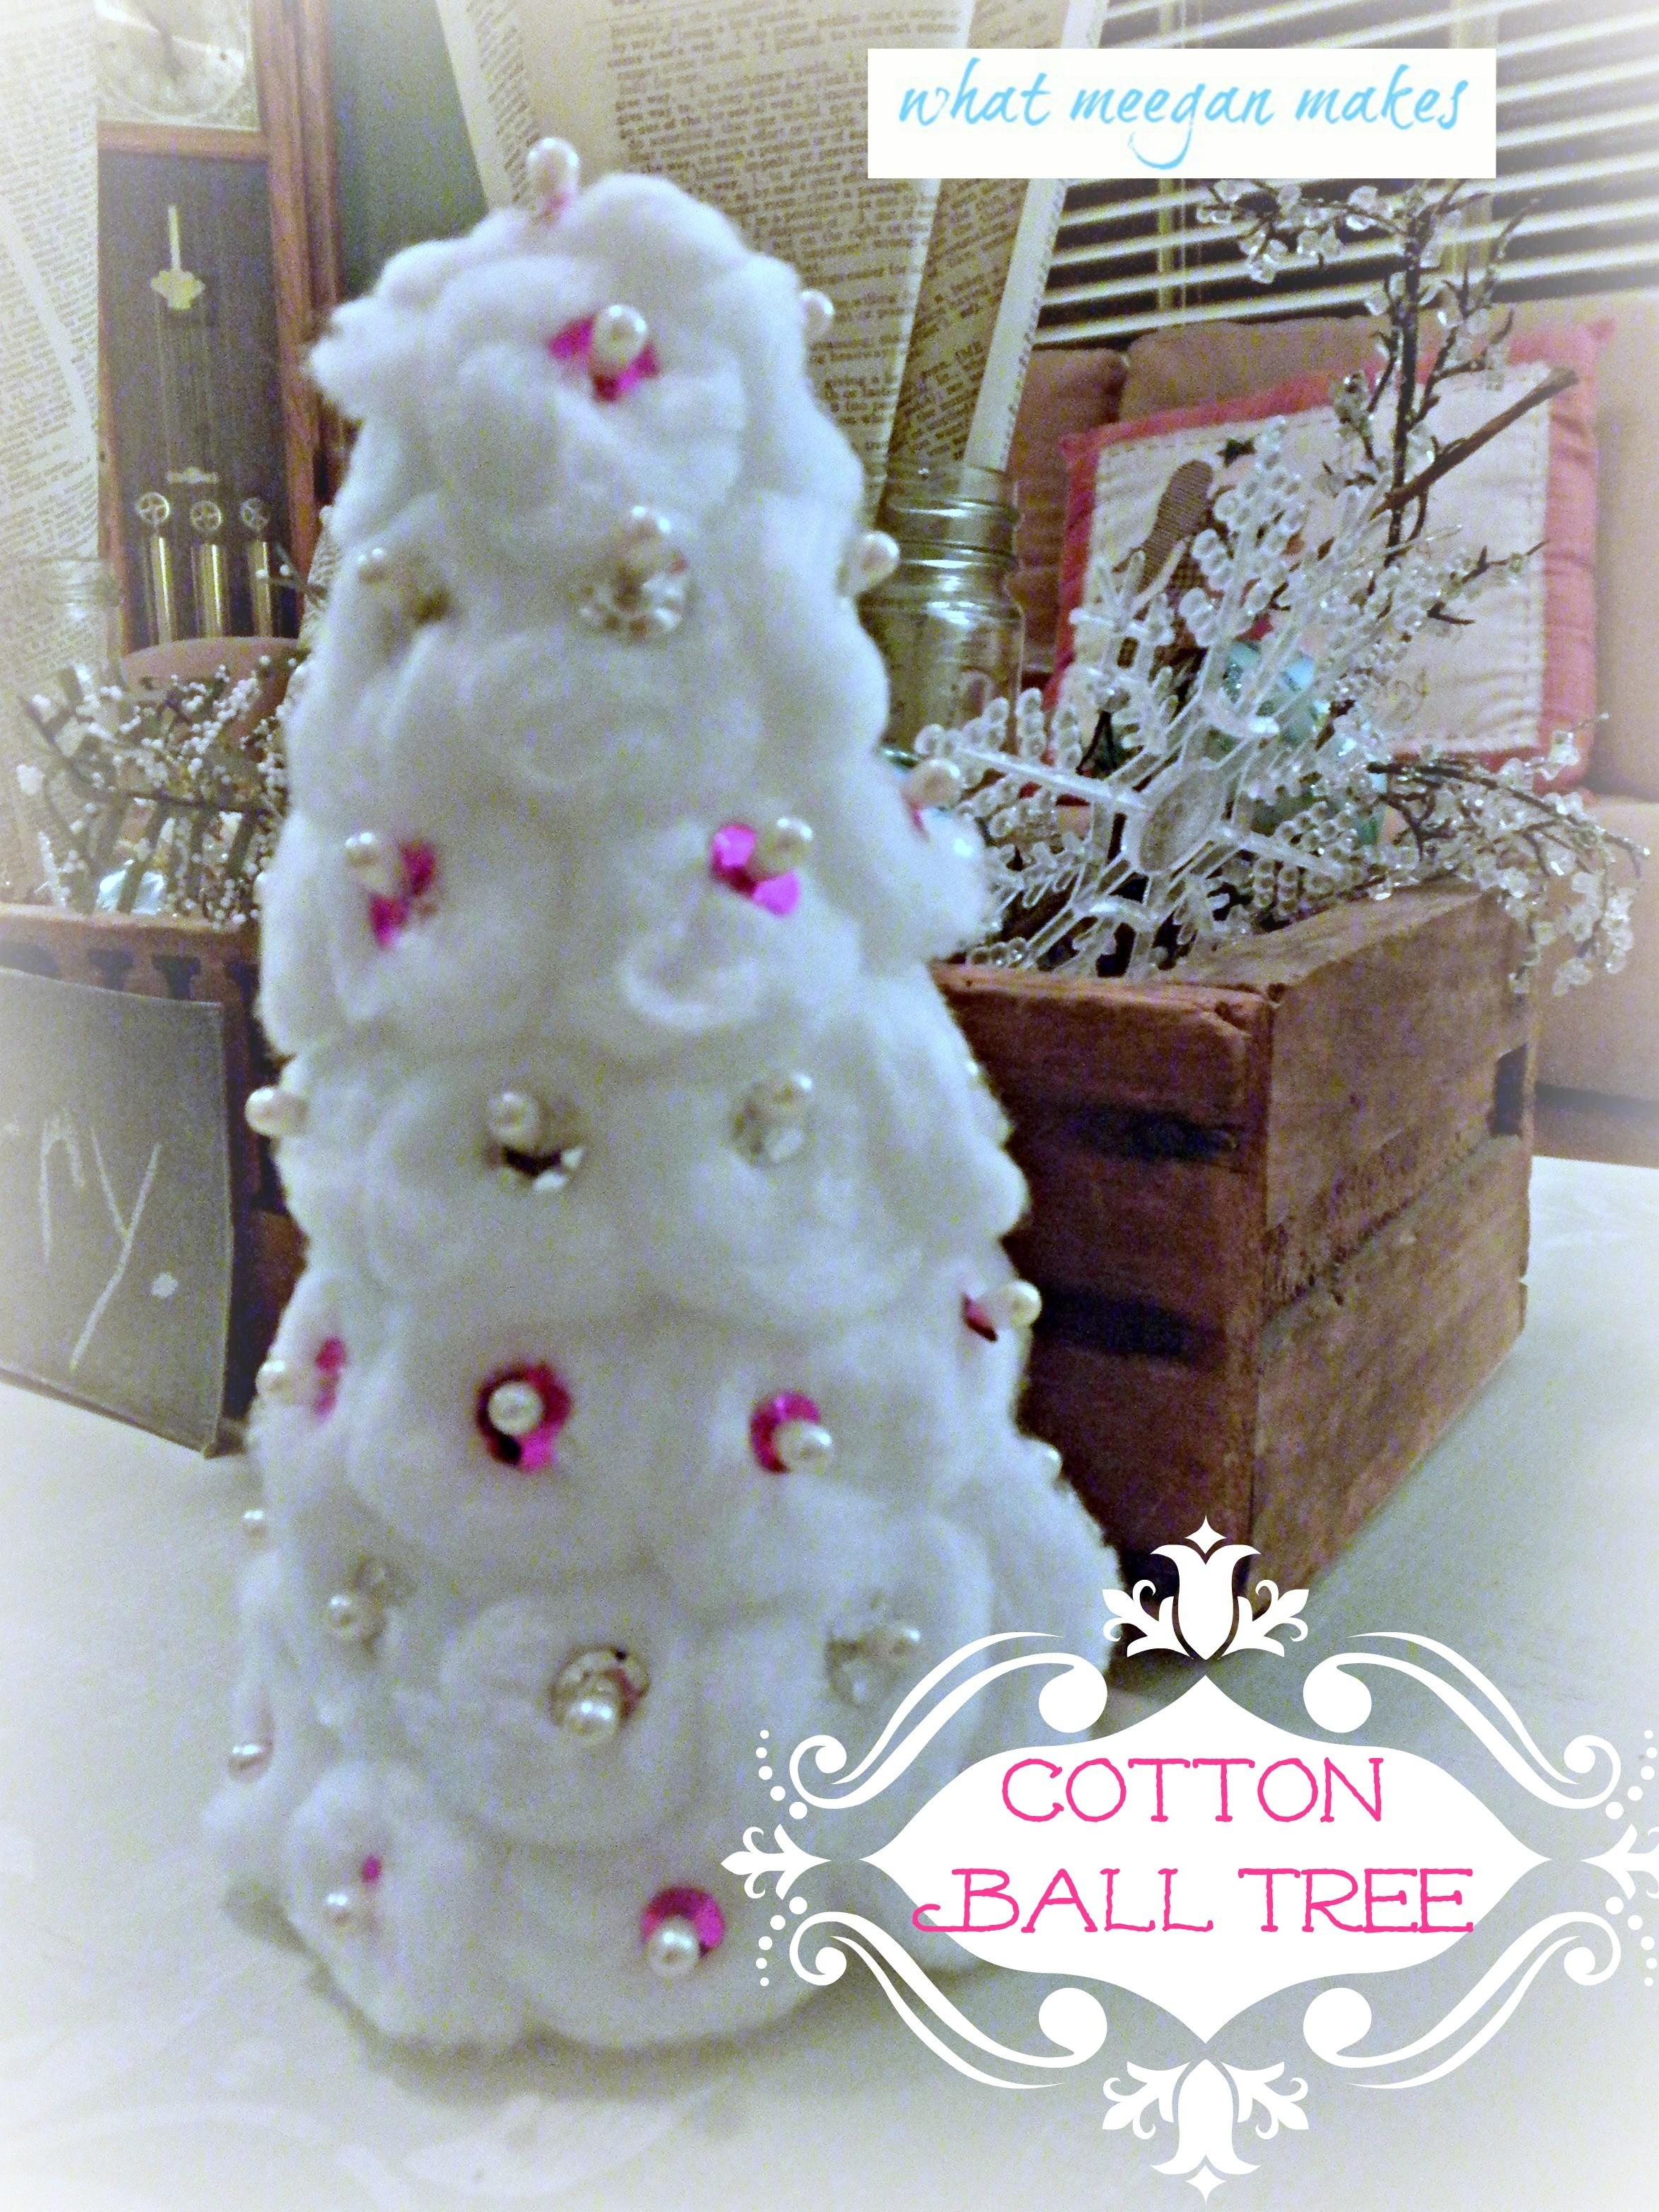 Cotton Ball Christmas Trees